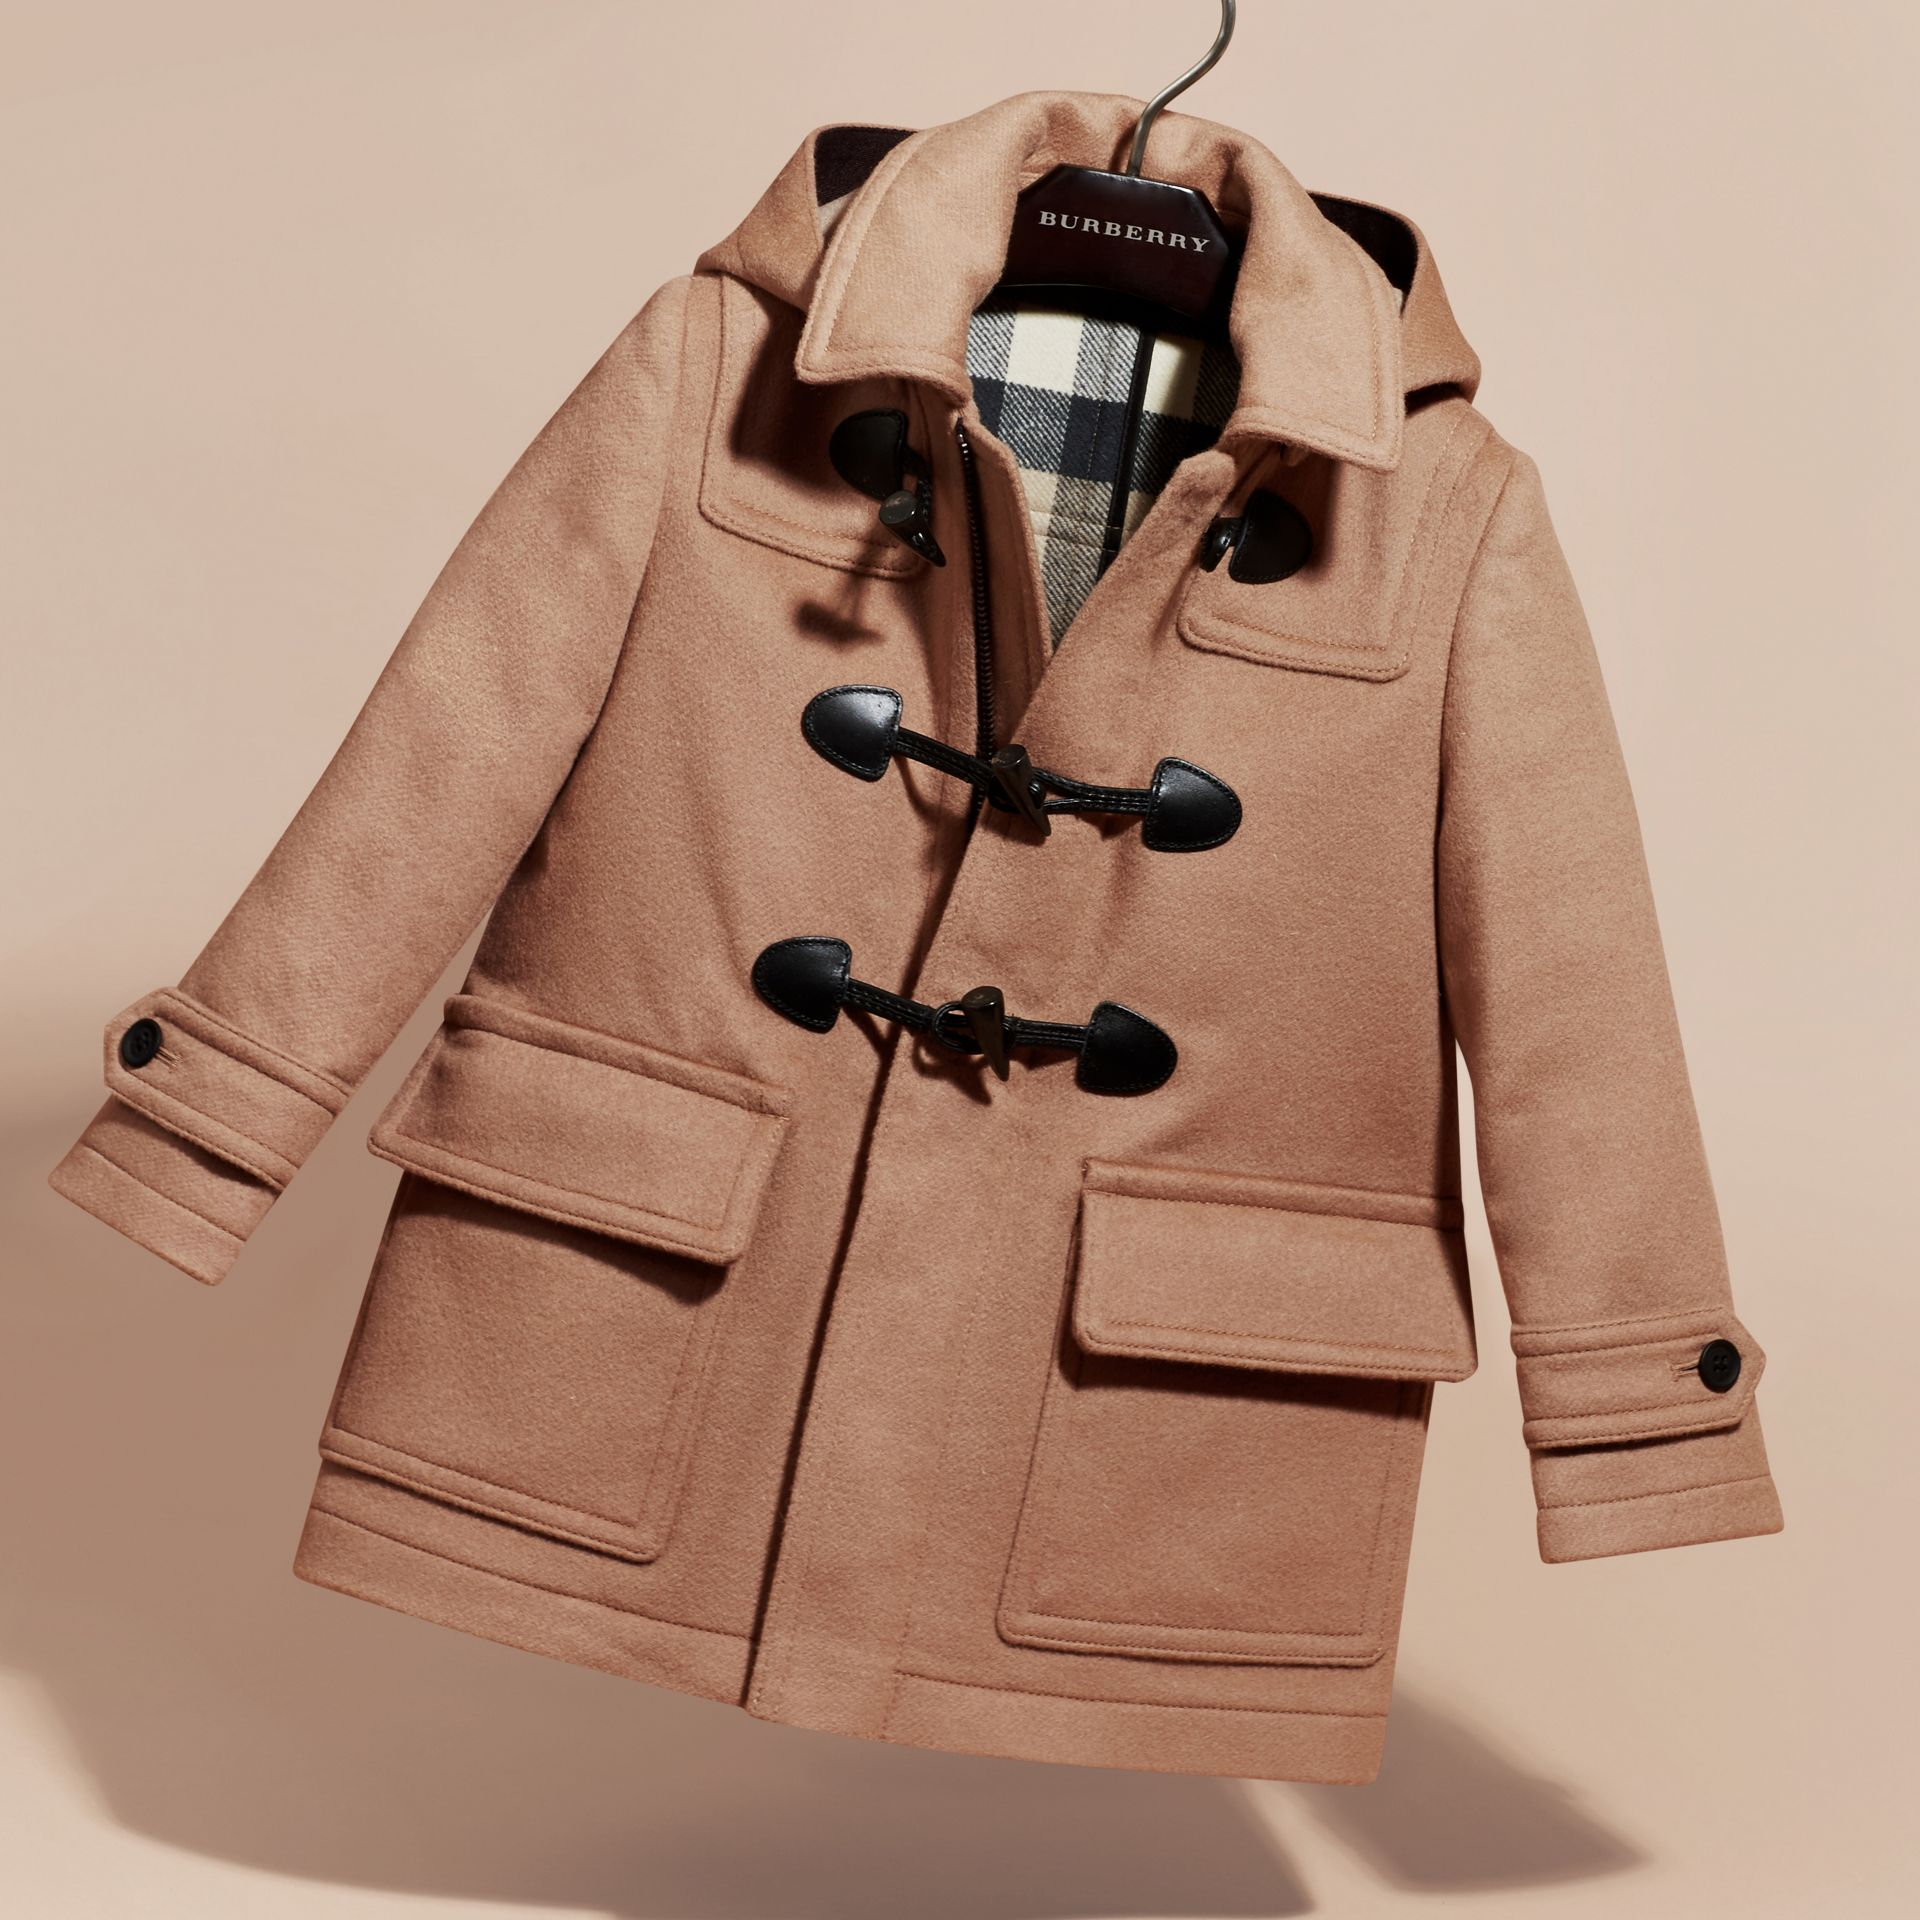 Hooded Wool Duffle Coat in New Camel | Burberry - gallery image 3